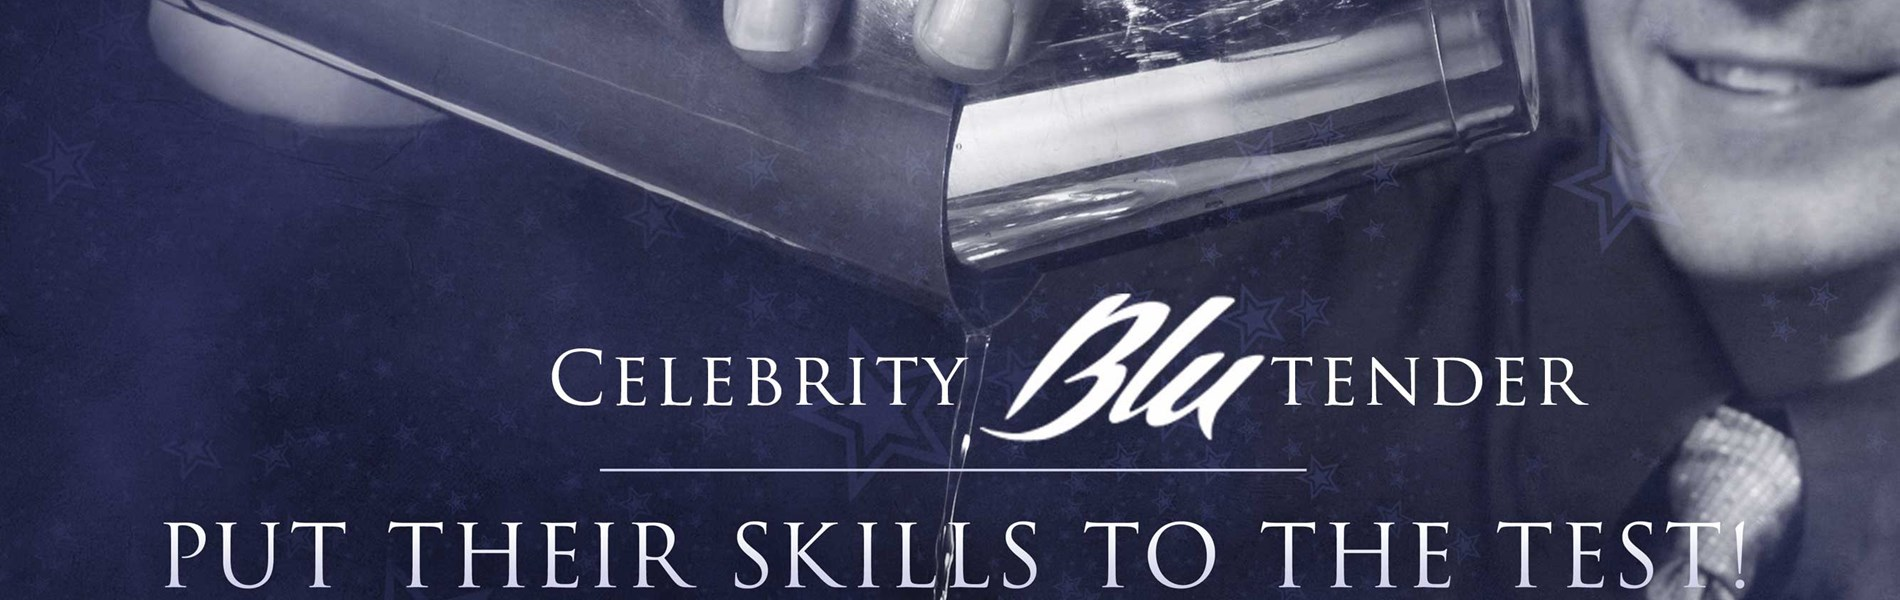 Celebrity BLUtender & BLUtender Battles at Blu